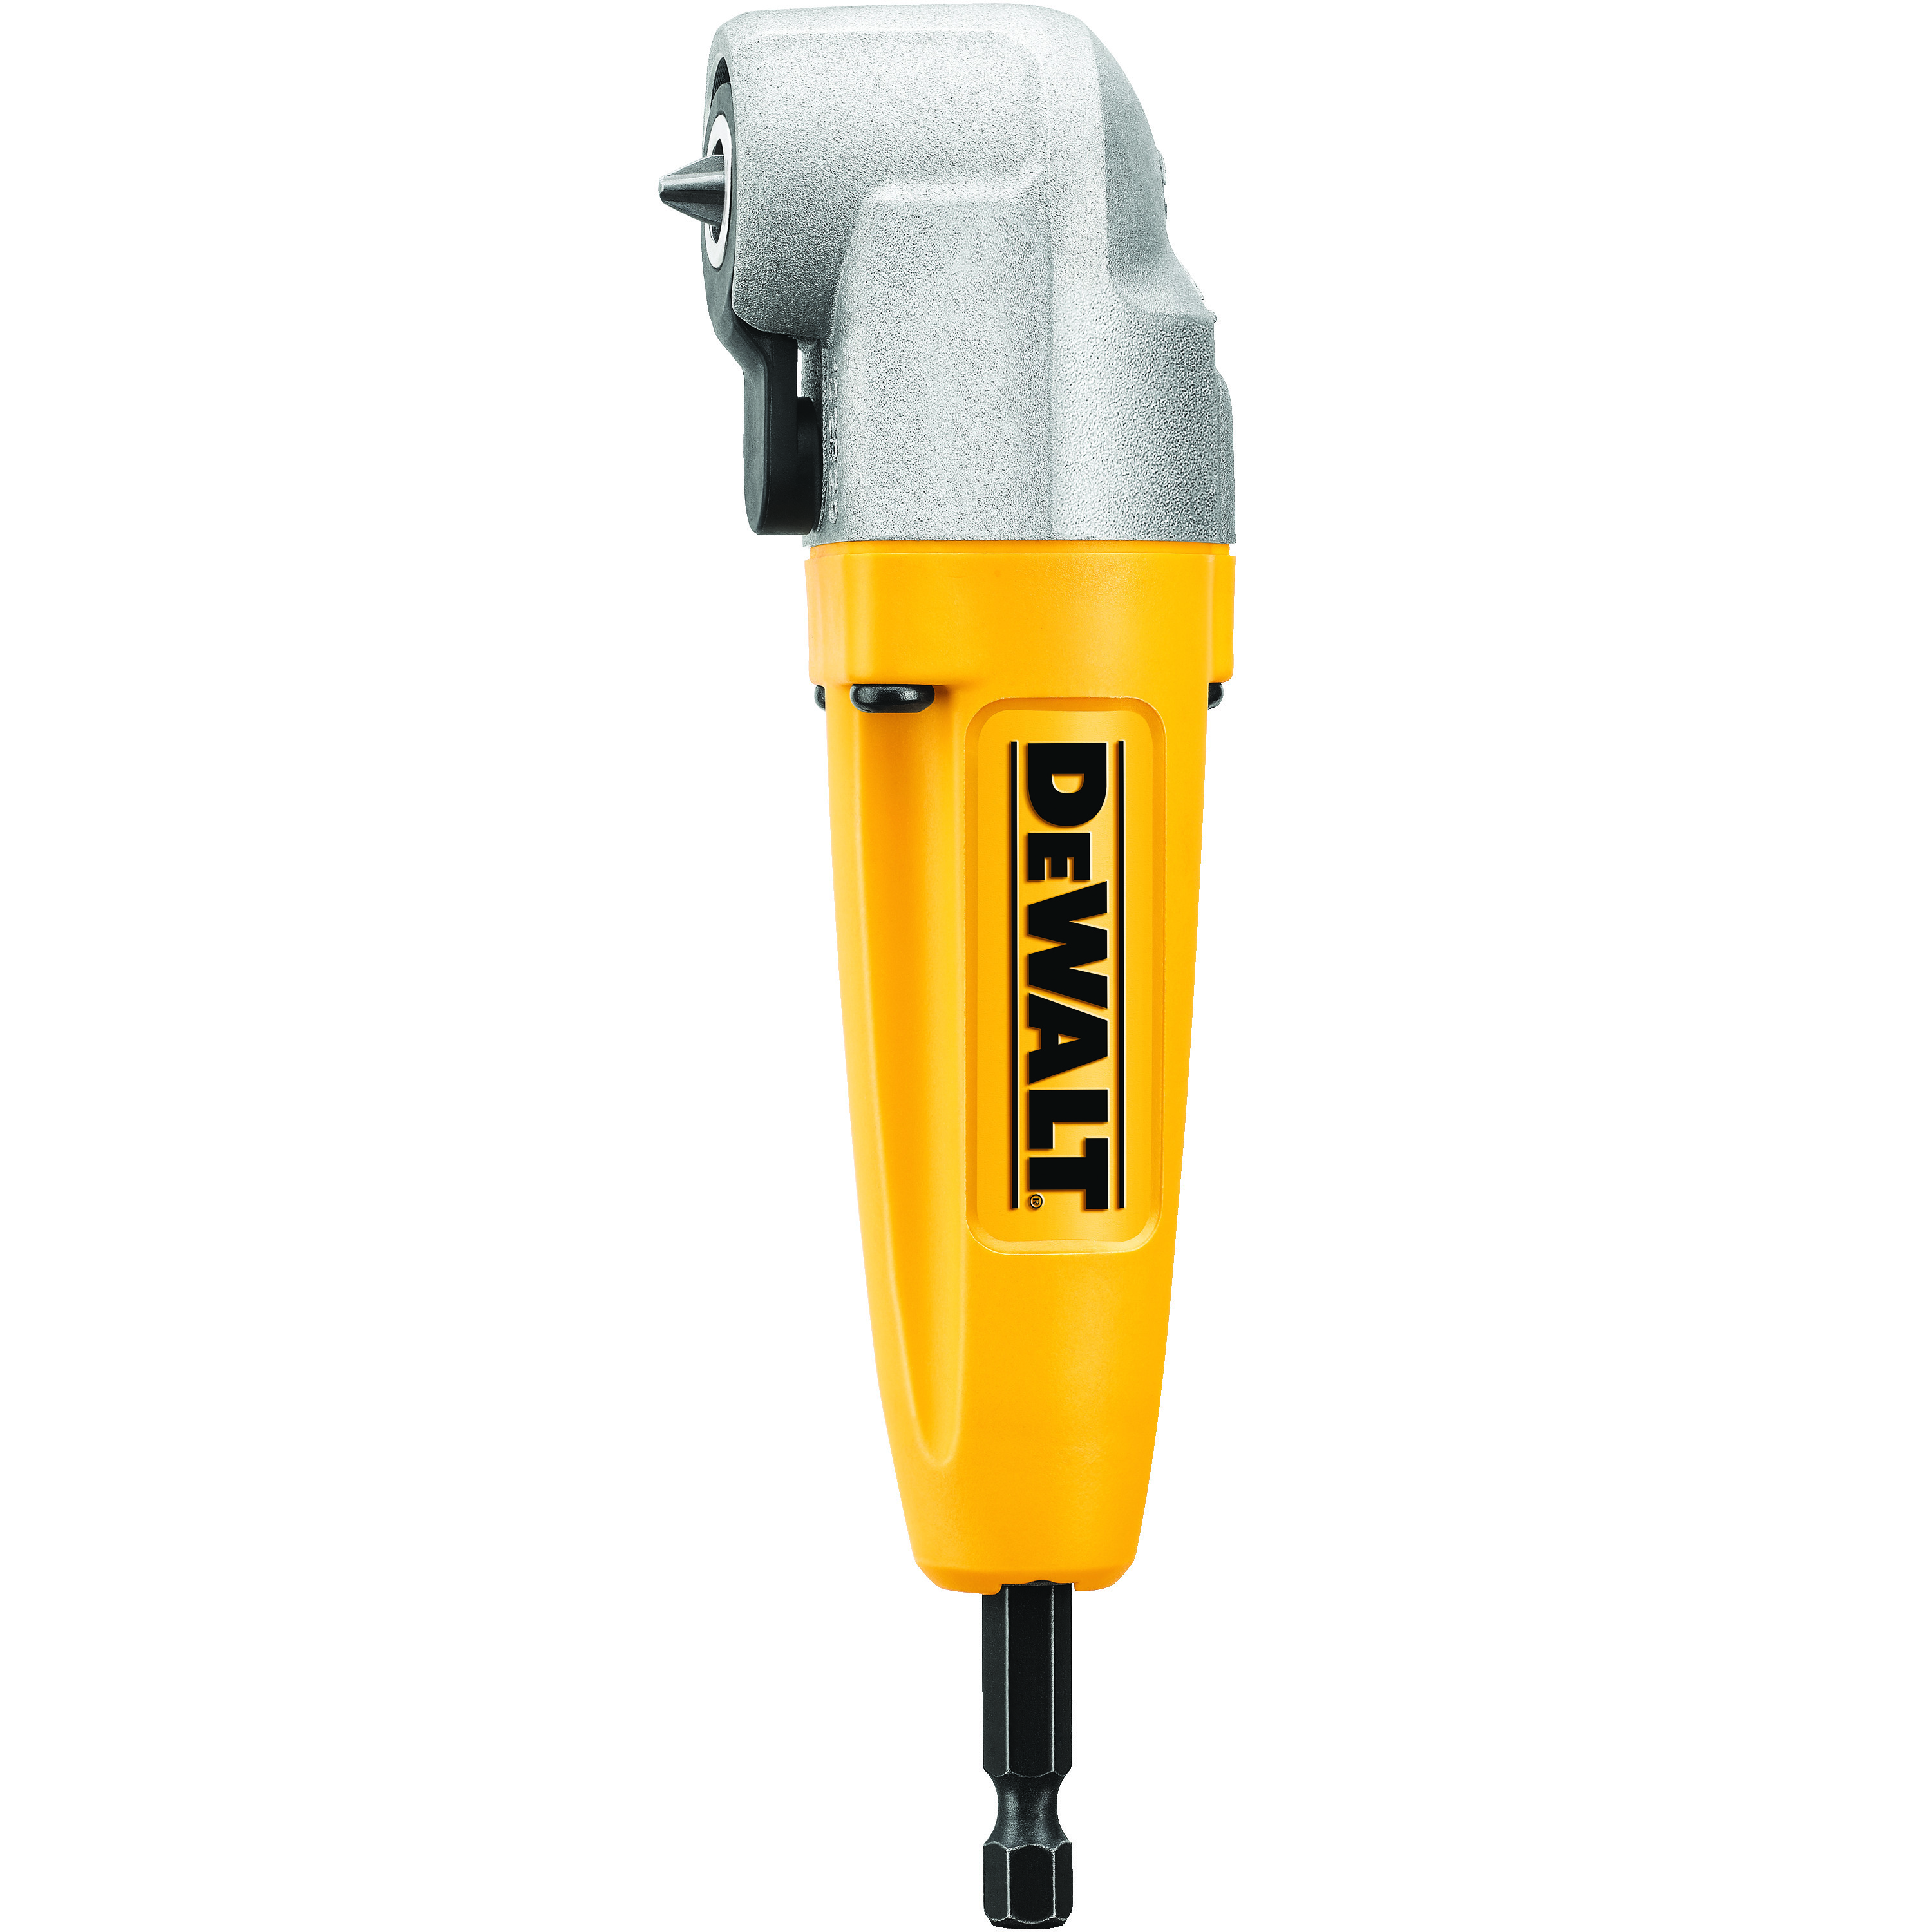 DeWALT® DWARA100 Cordless Right Angle Attachment, For Use With Cordless/Corded Drill and Driver